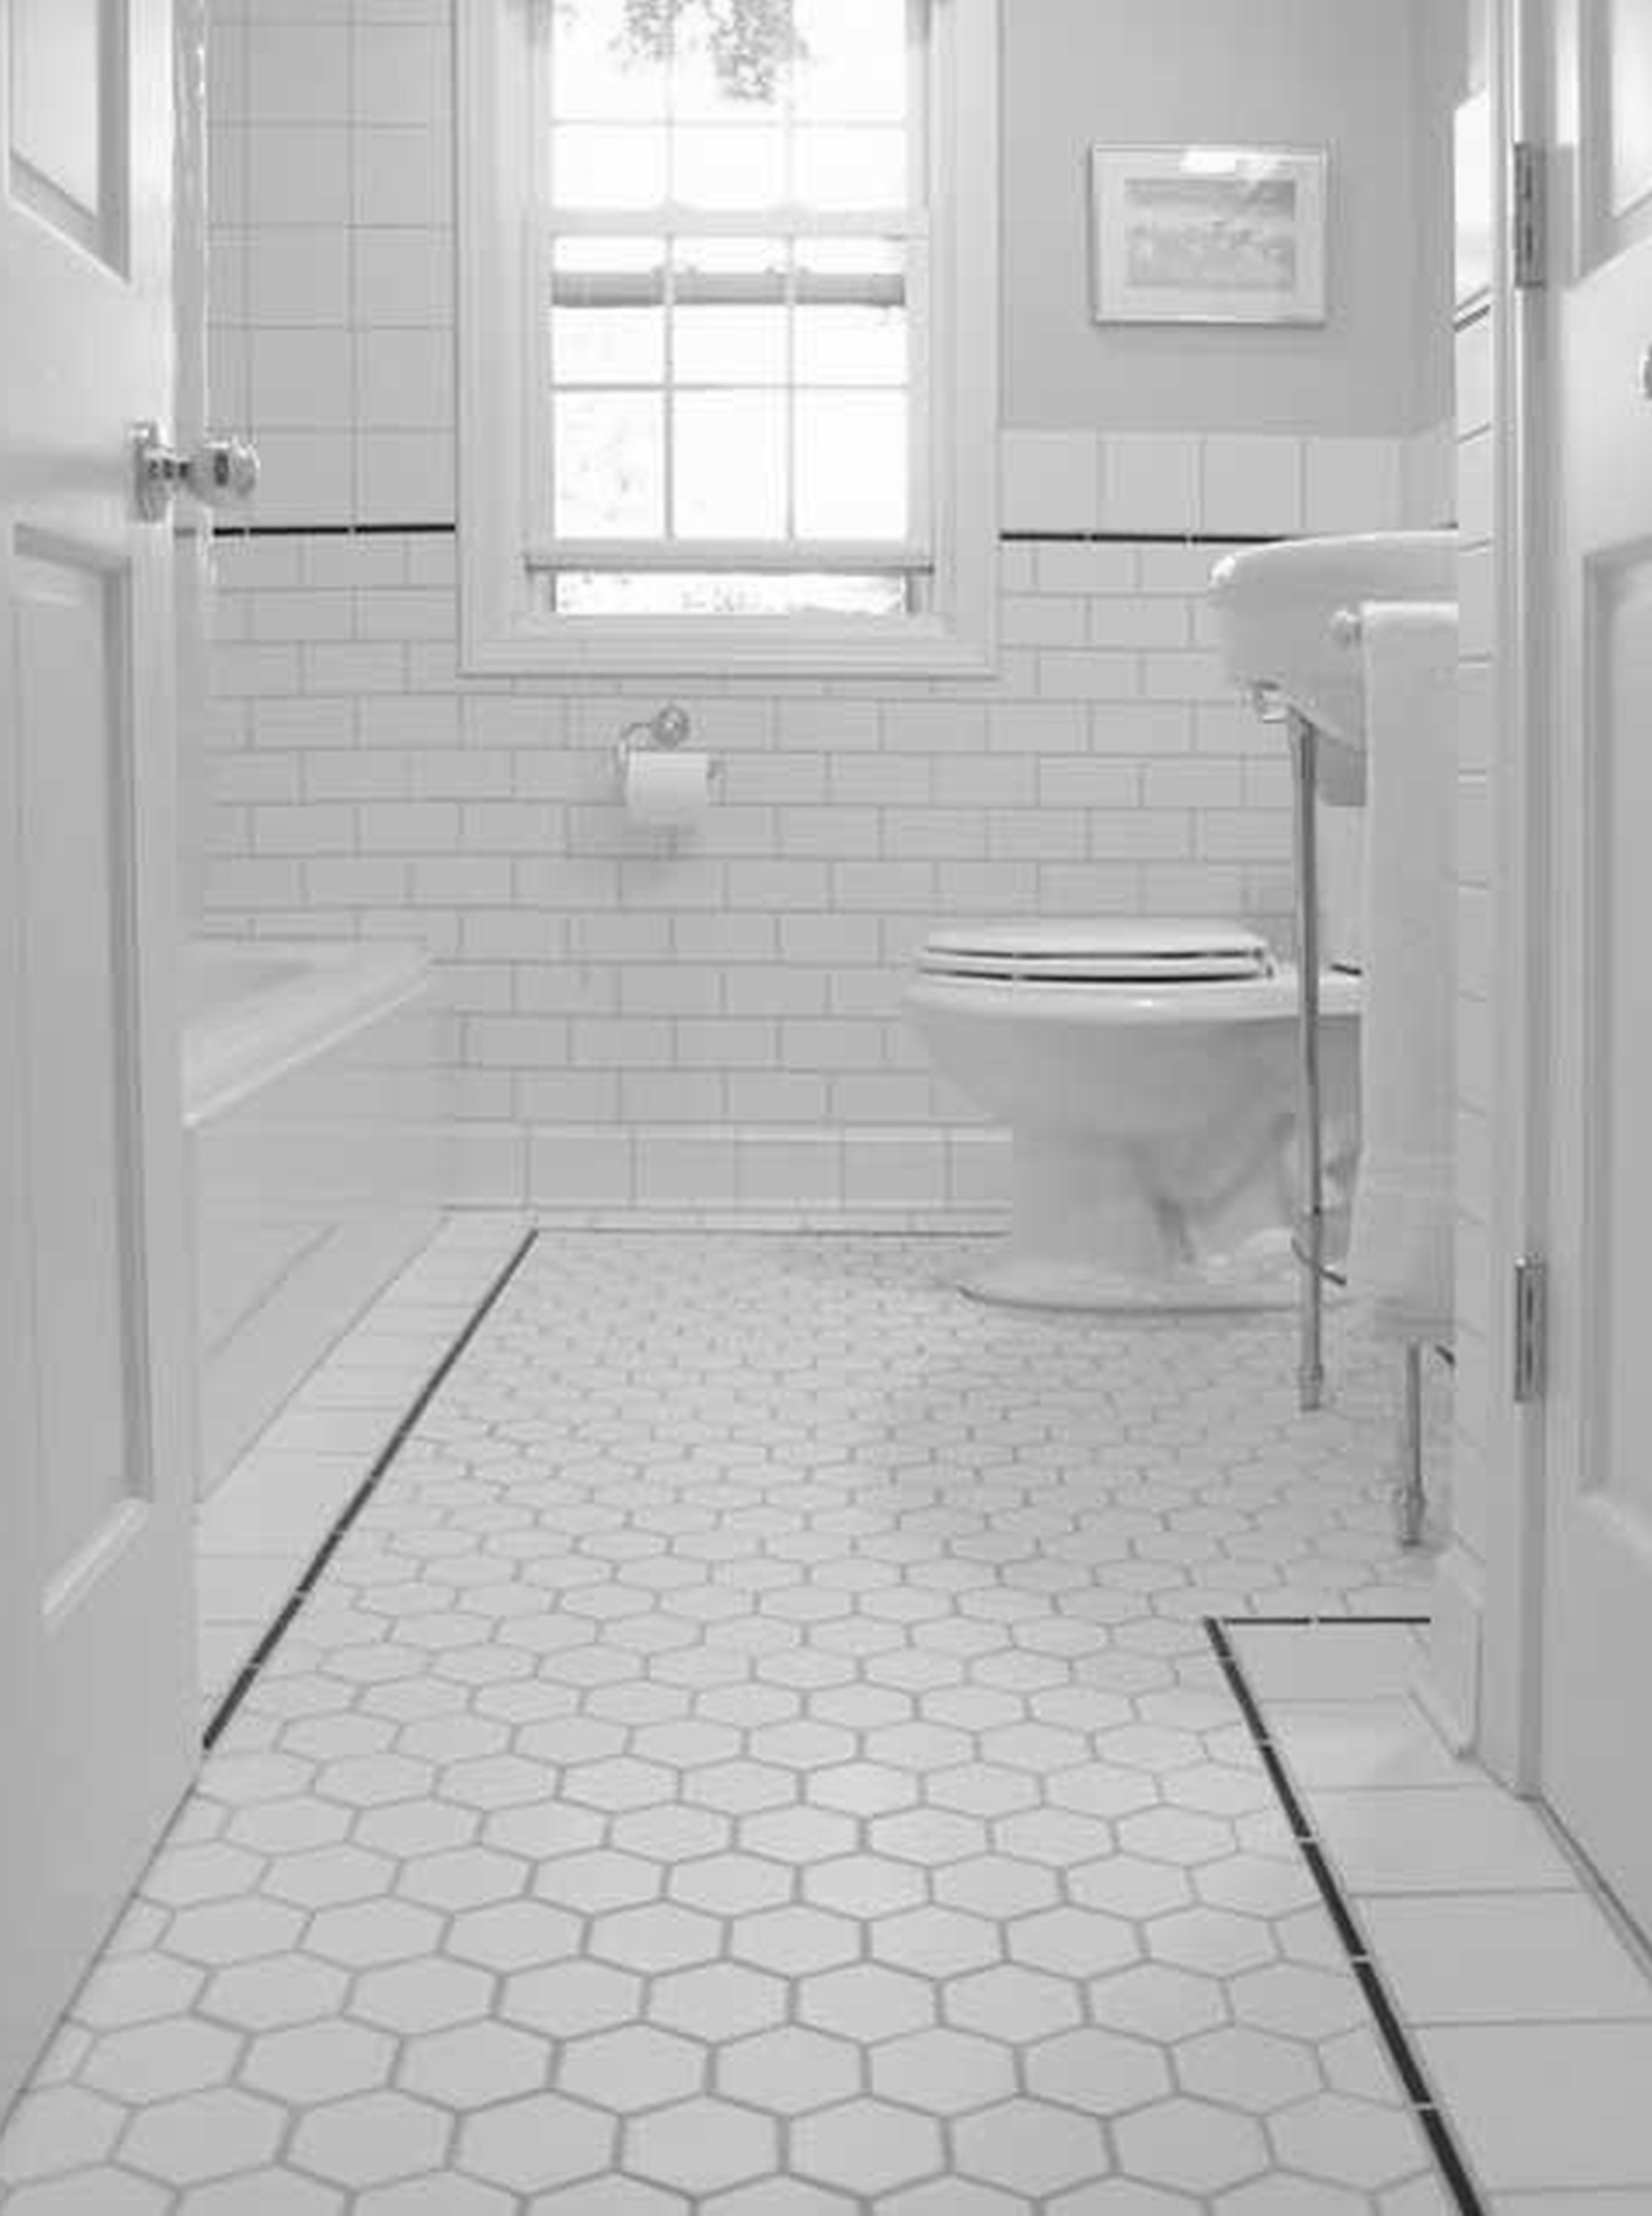 20 functional & cool bathroom tile ideas | bathroom tile ideas